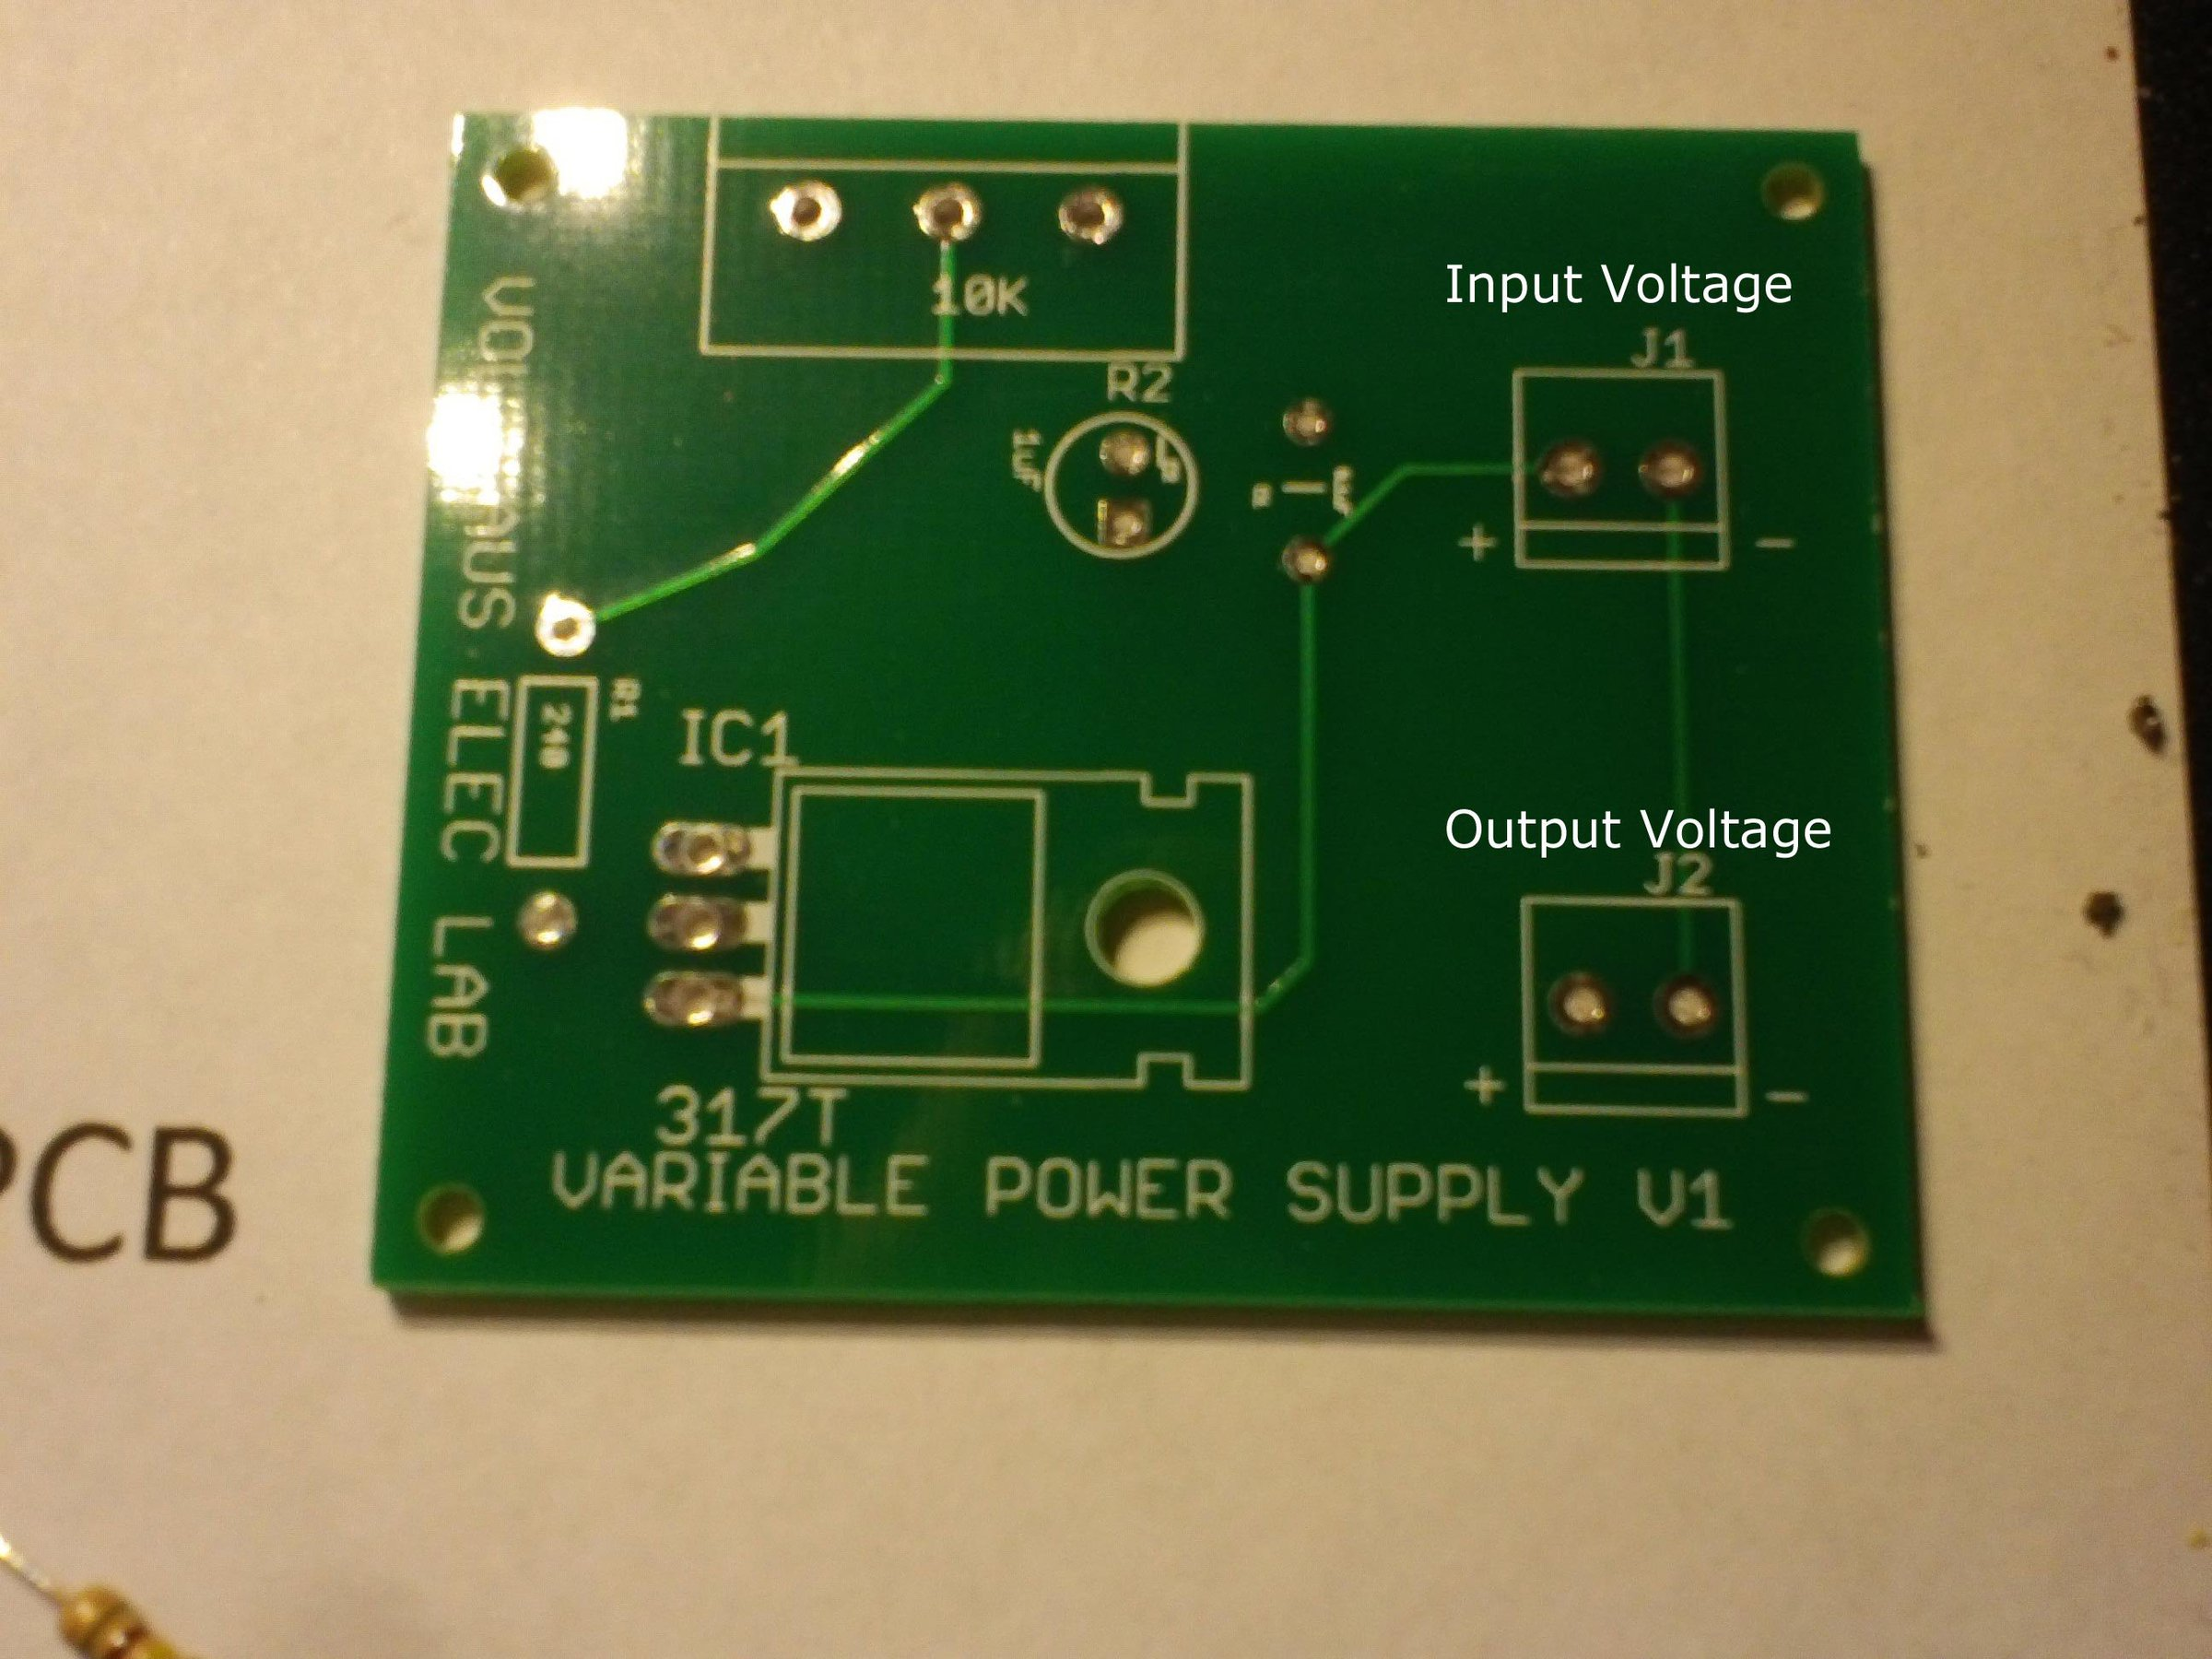 Lm317t Variable Power Supply Kit From Volthaus Electronics 3